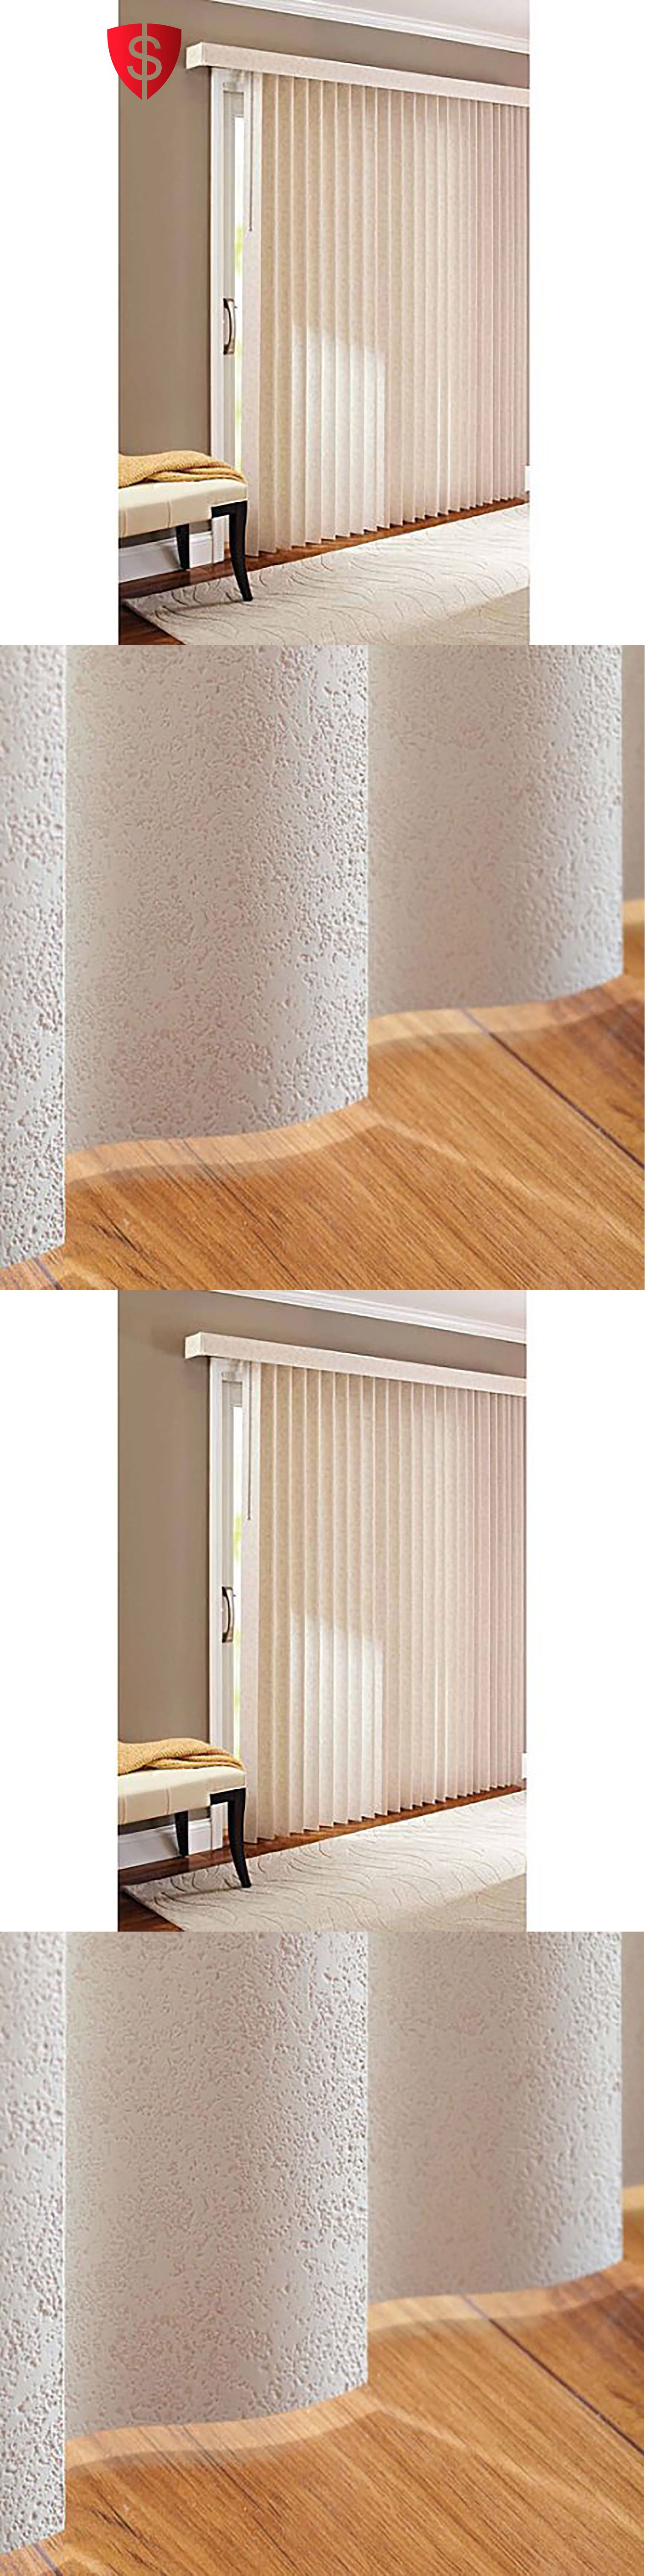 cope rollup curtain also sofa roll curtains up trends walmartcomrhwalmartcom window fabric wall ashland bathroom gallery rhhamiparacom images blinds vinyl